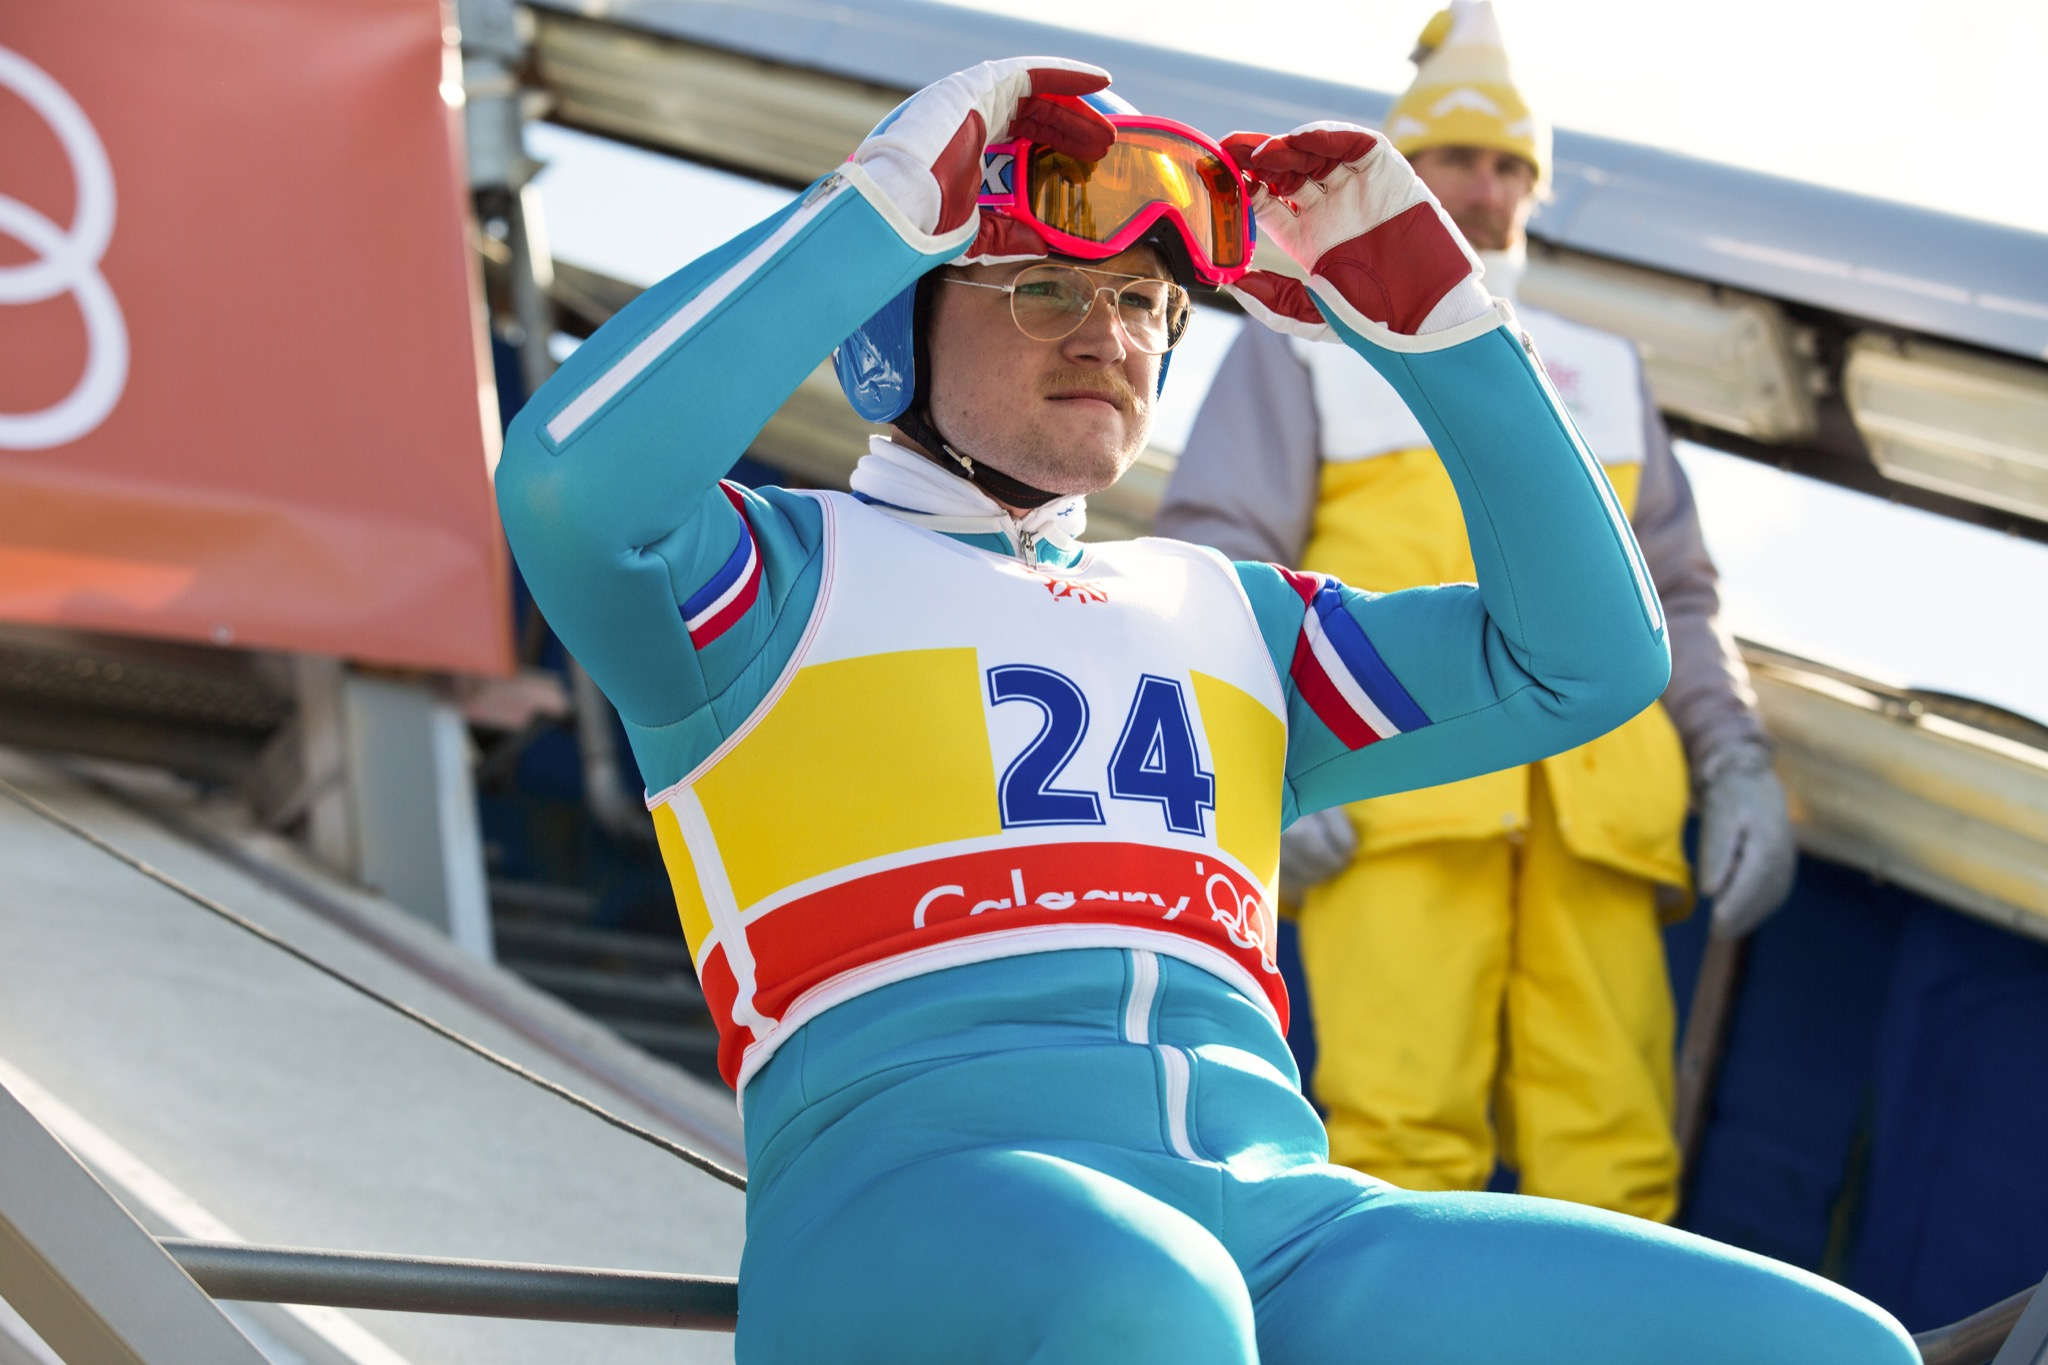 EDDIE THE EAGLE-image-6